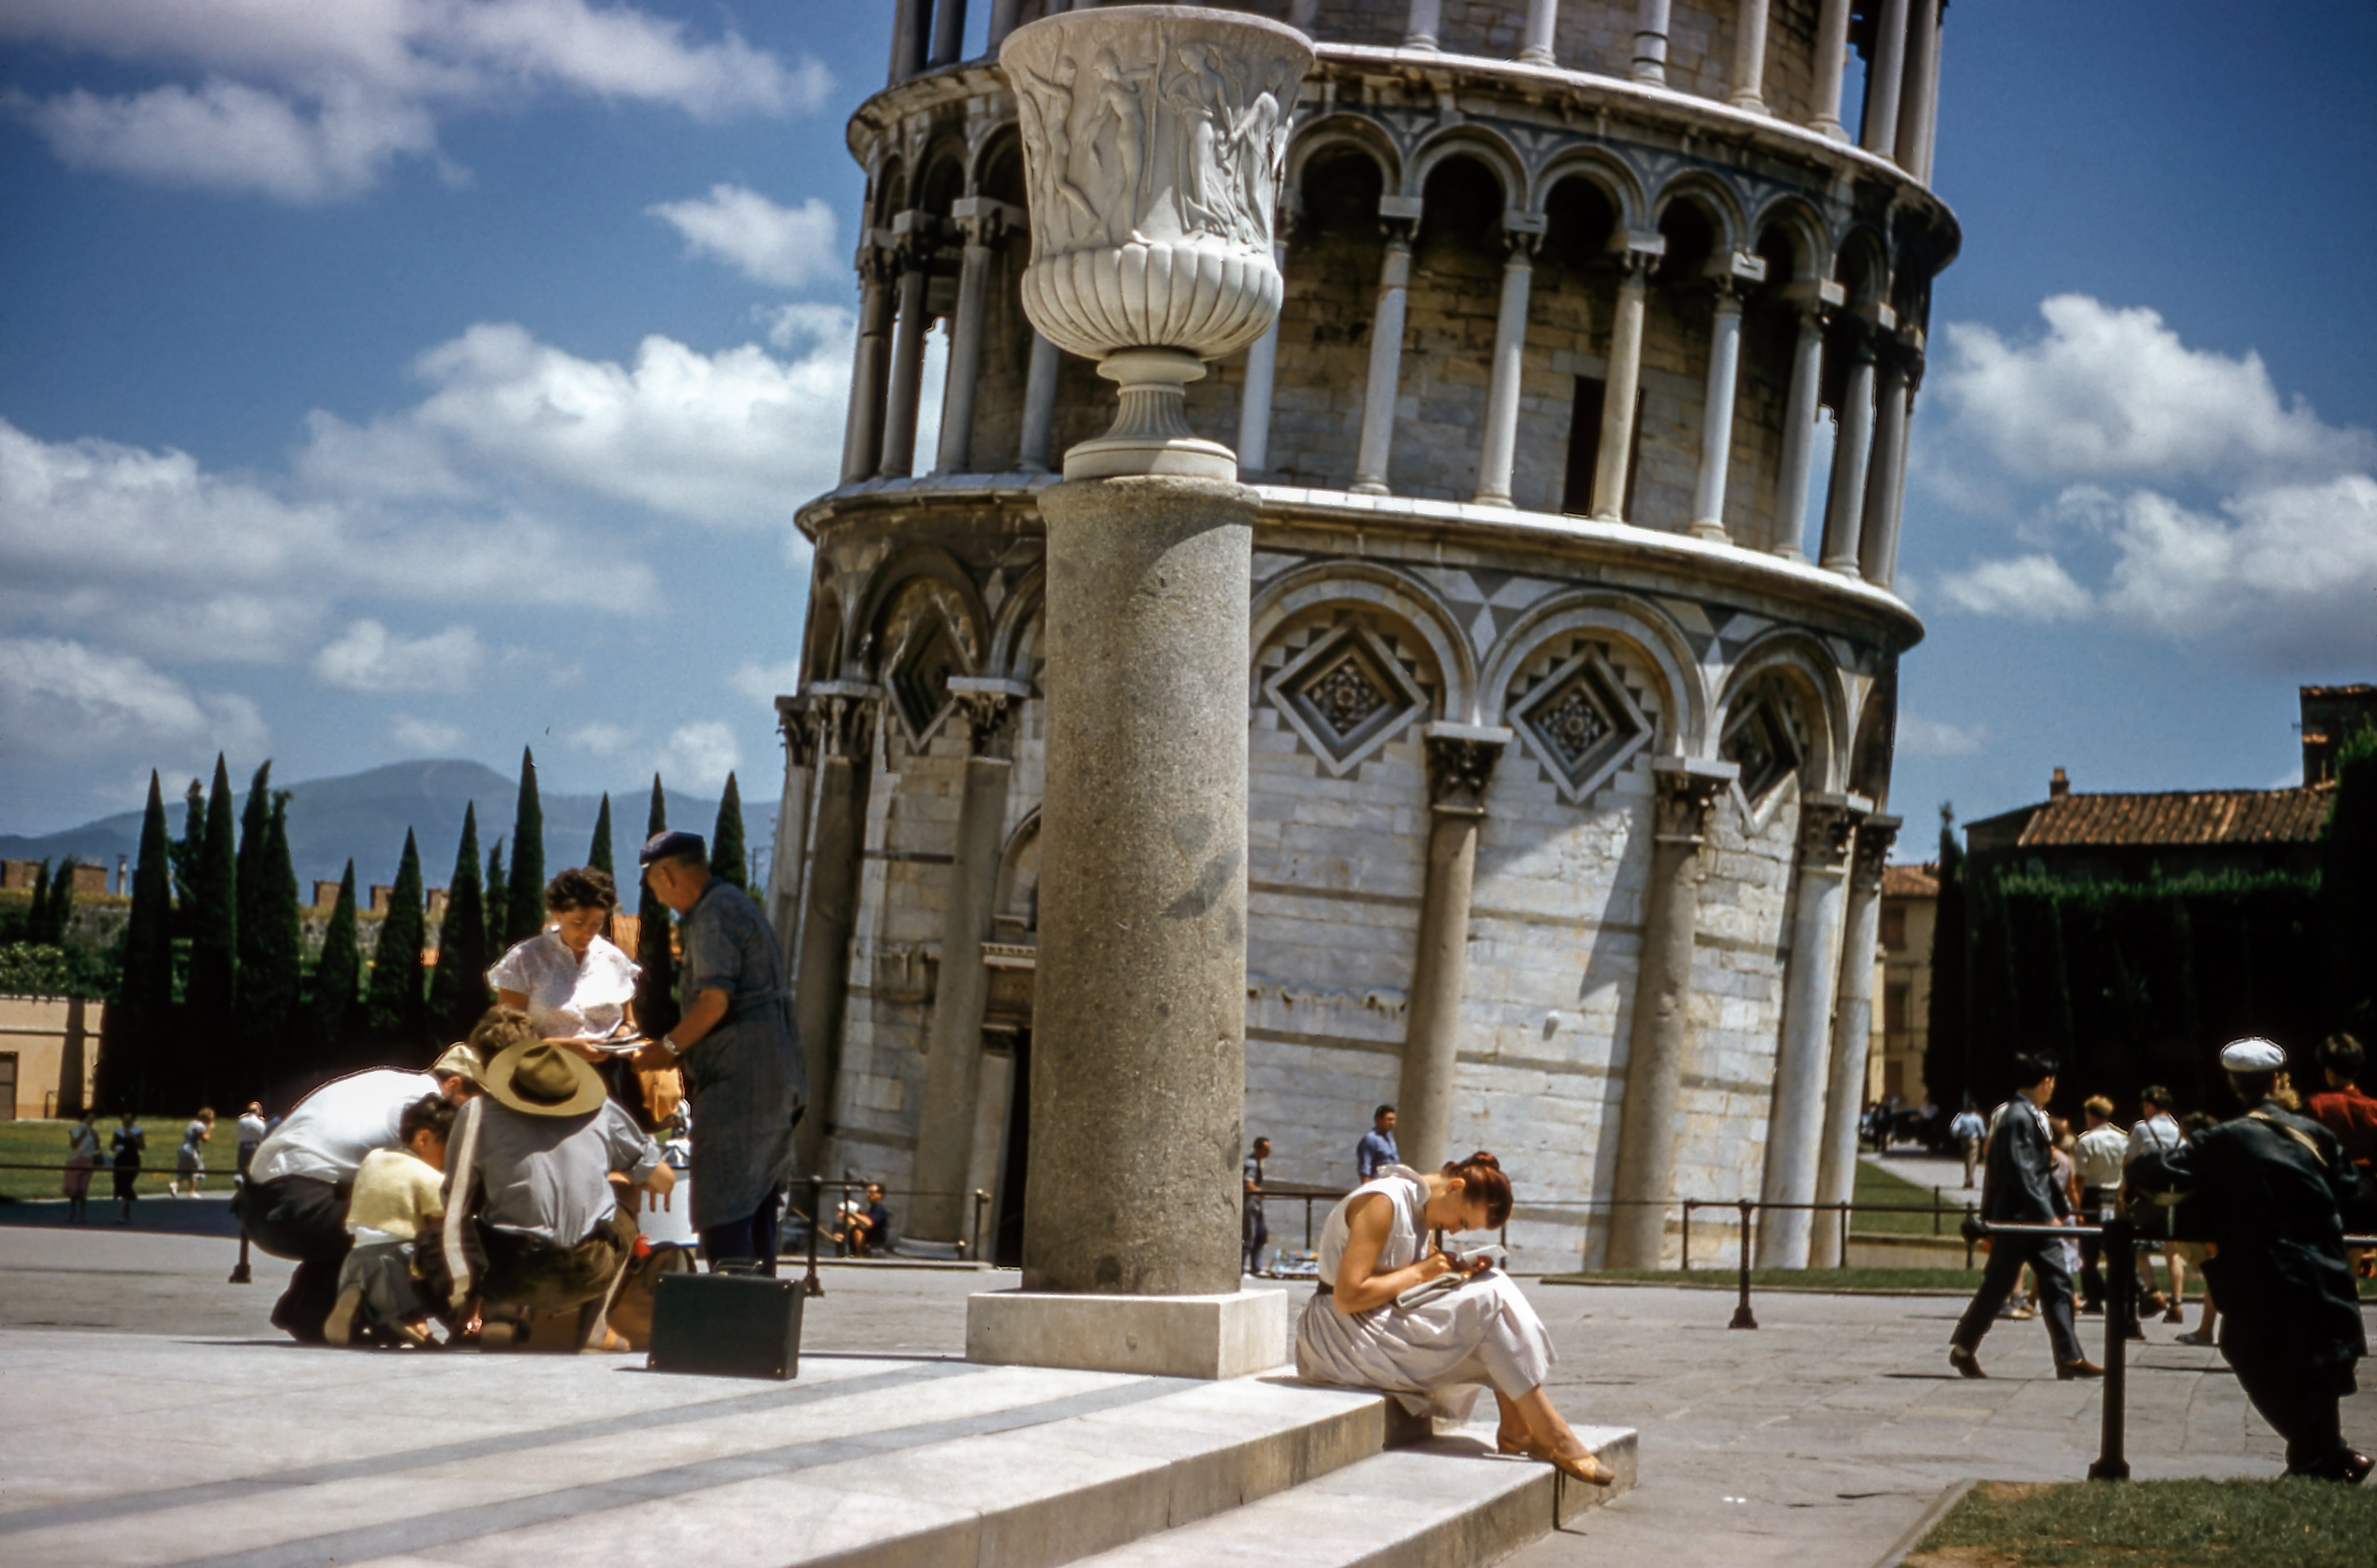 Tourists sitting and walking around the Leaning Tower of Pisa